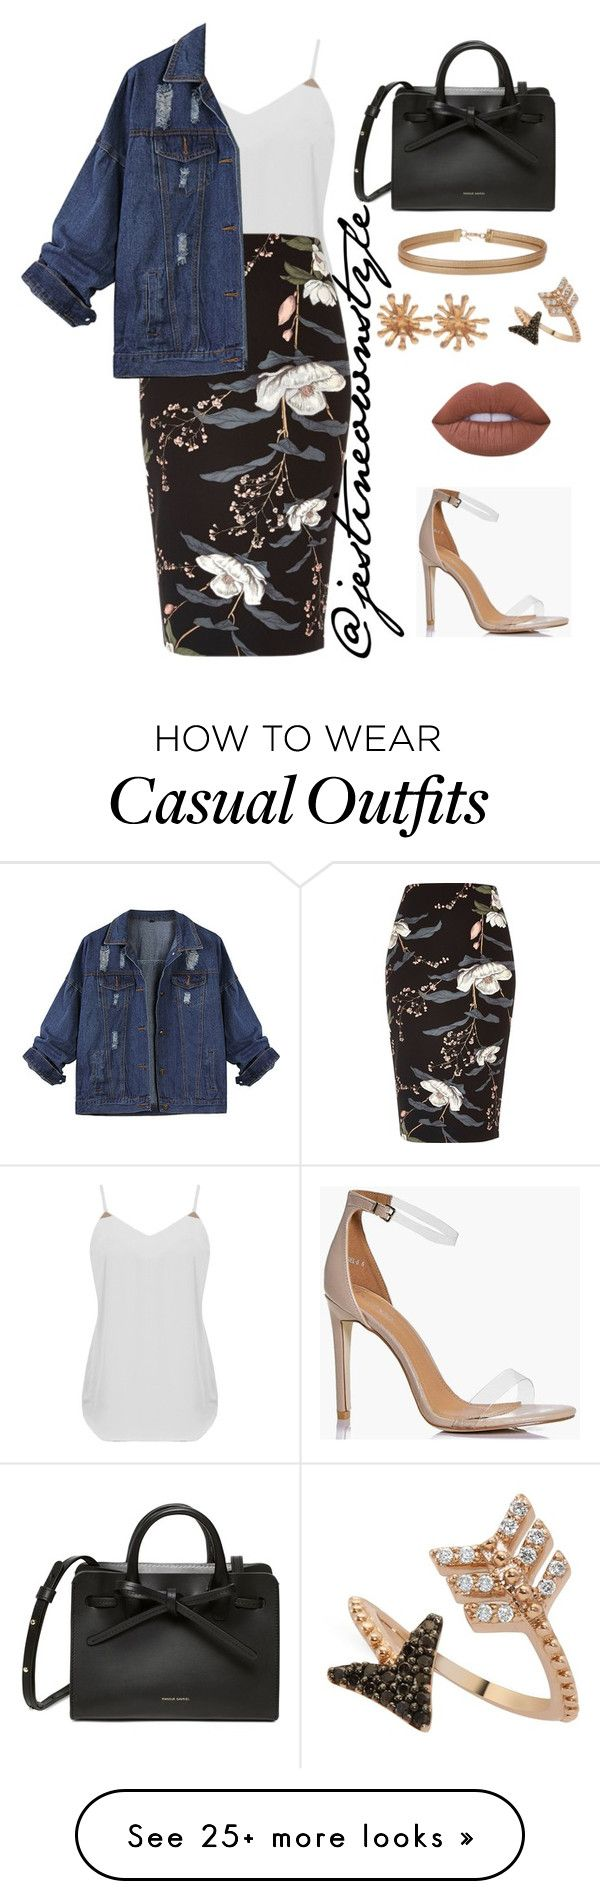 """Casual "" by jestineownstyle on Polyvore featuring Boohoo, River Island, Miss Selfridge, Bee Goddess, Christian Lacroix and Lime Crime"